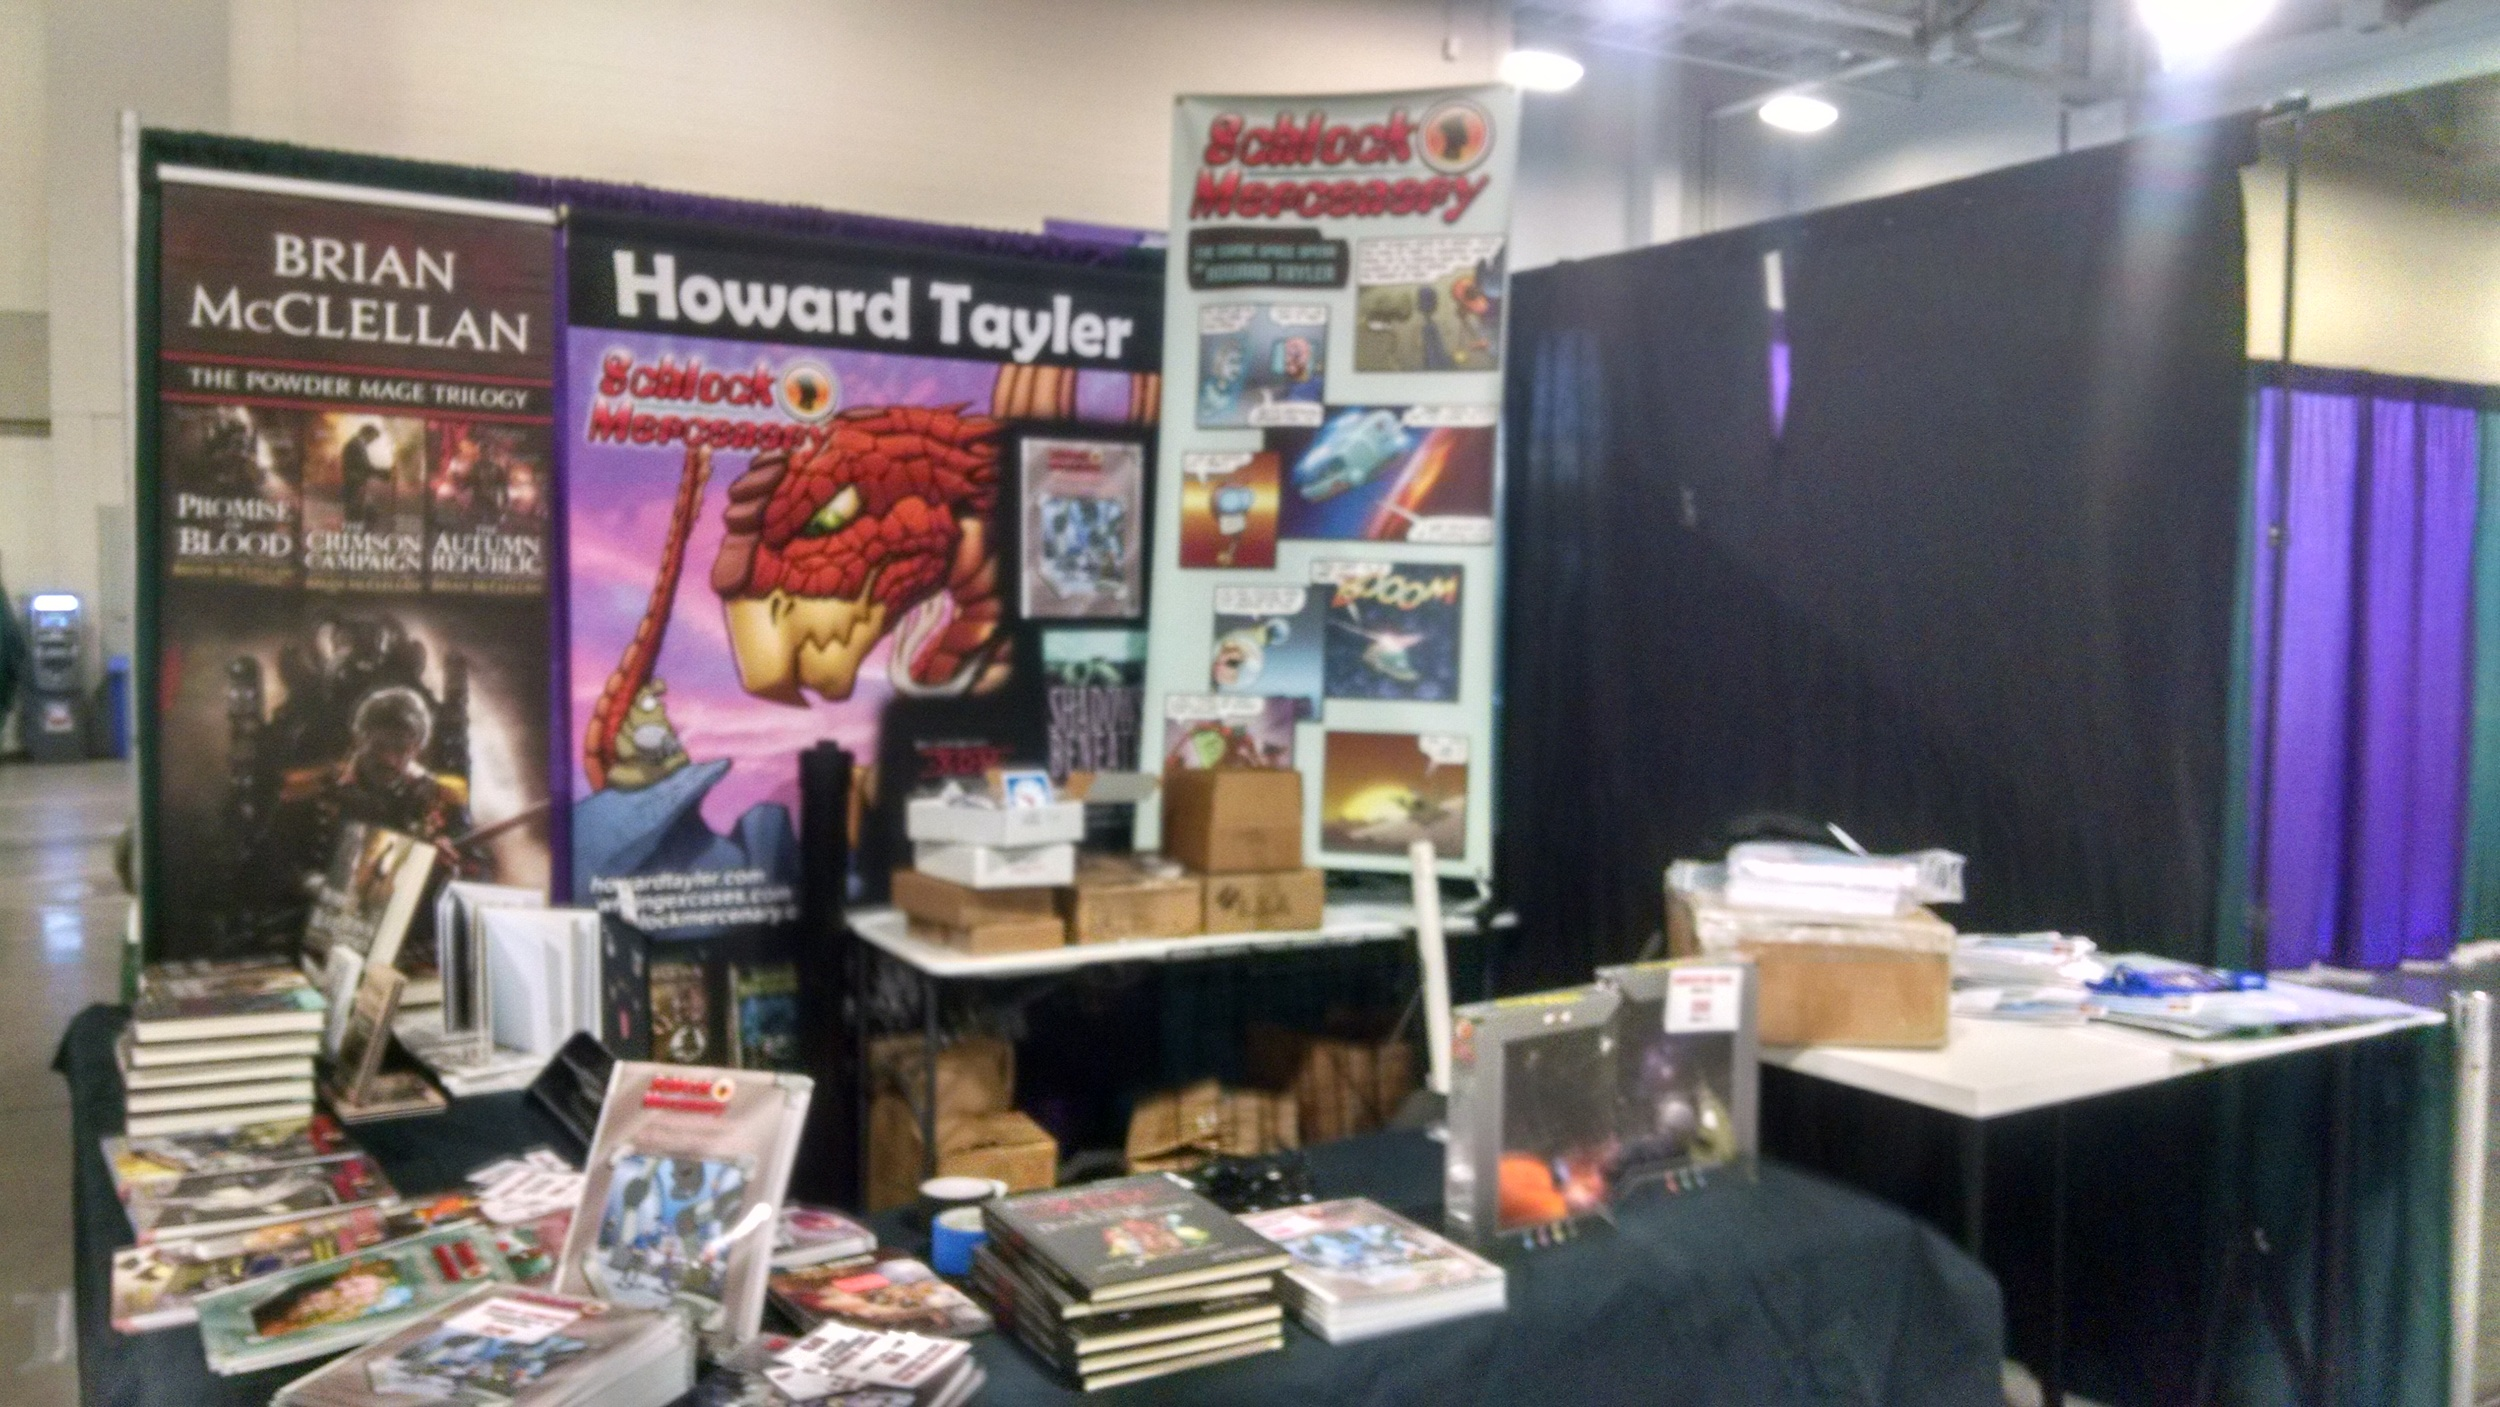 A blurry photo of the booth during set up.